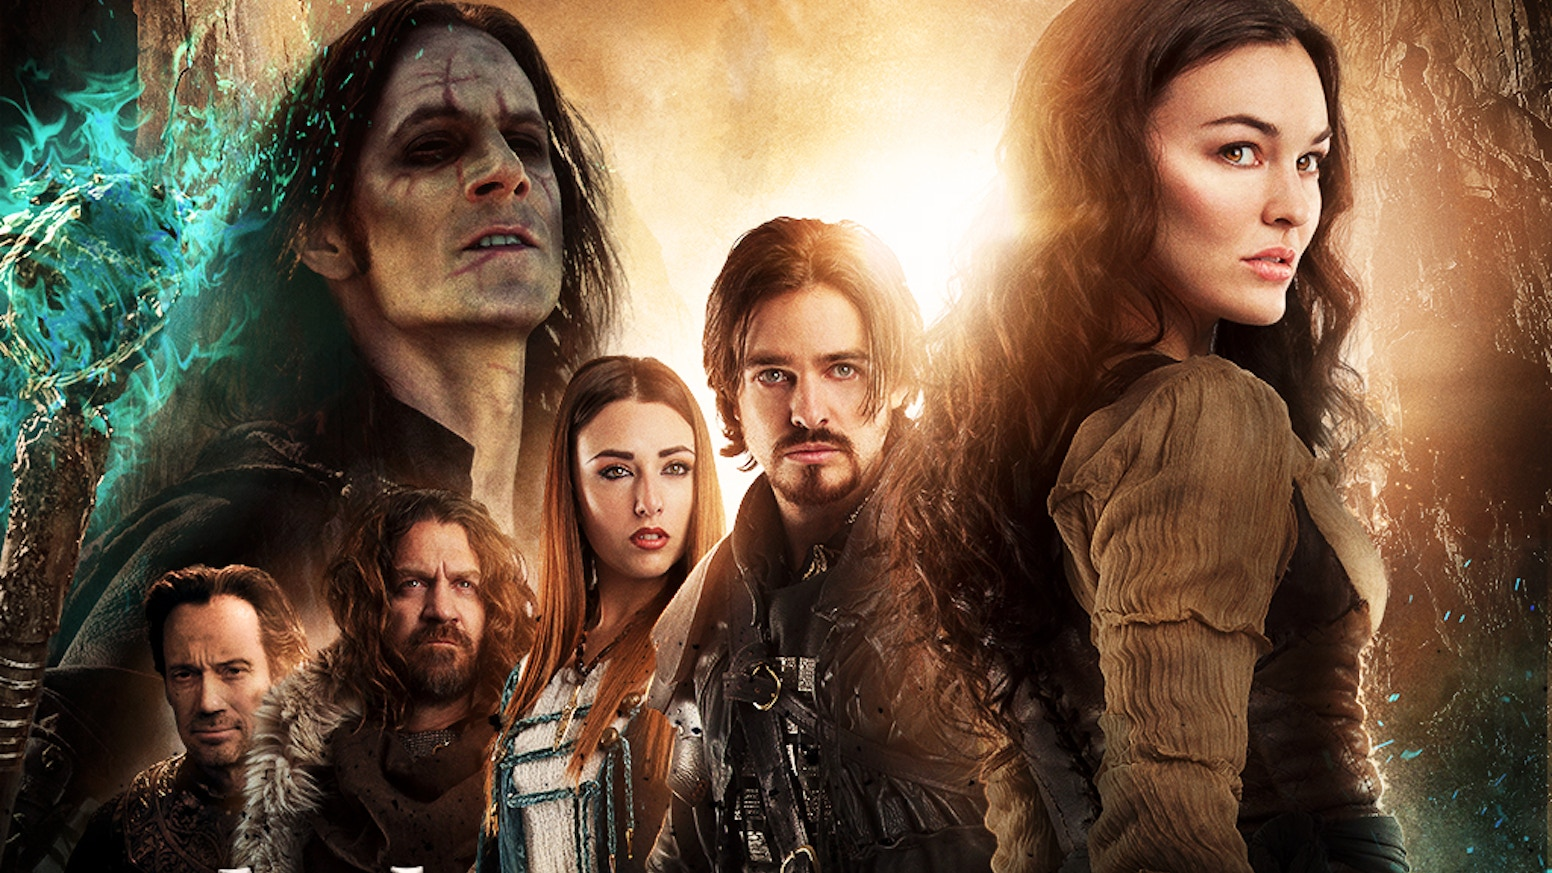 sinister squad hindi dubbed movie download